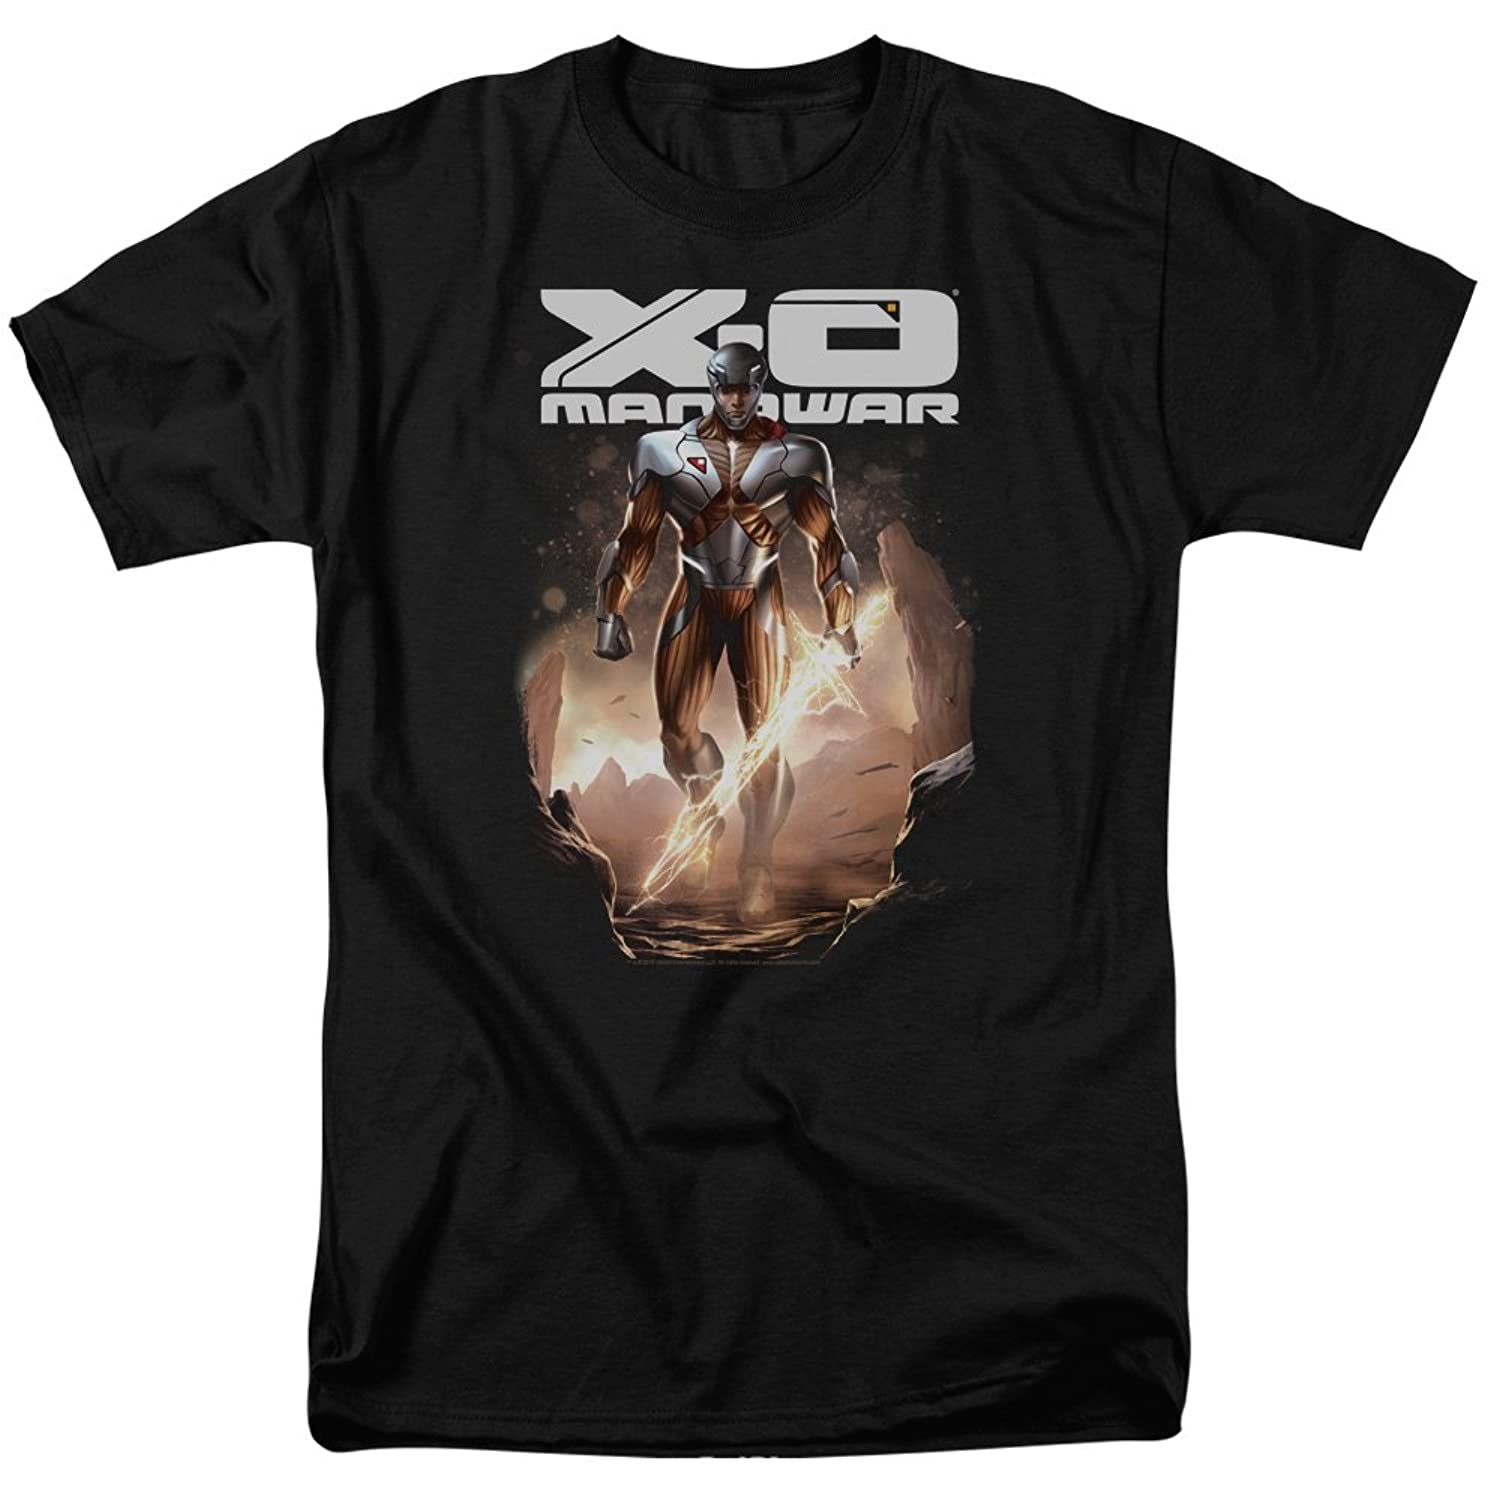 Xo Manowar - Mens Lightning Sword T-Shirt